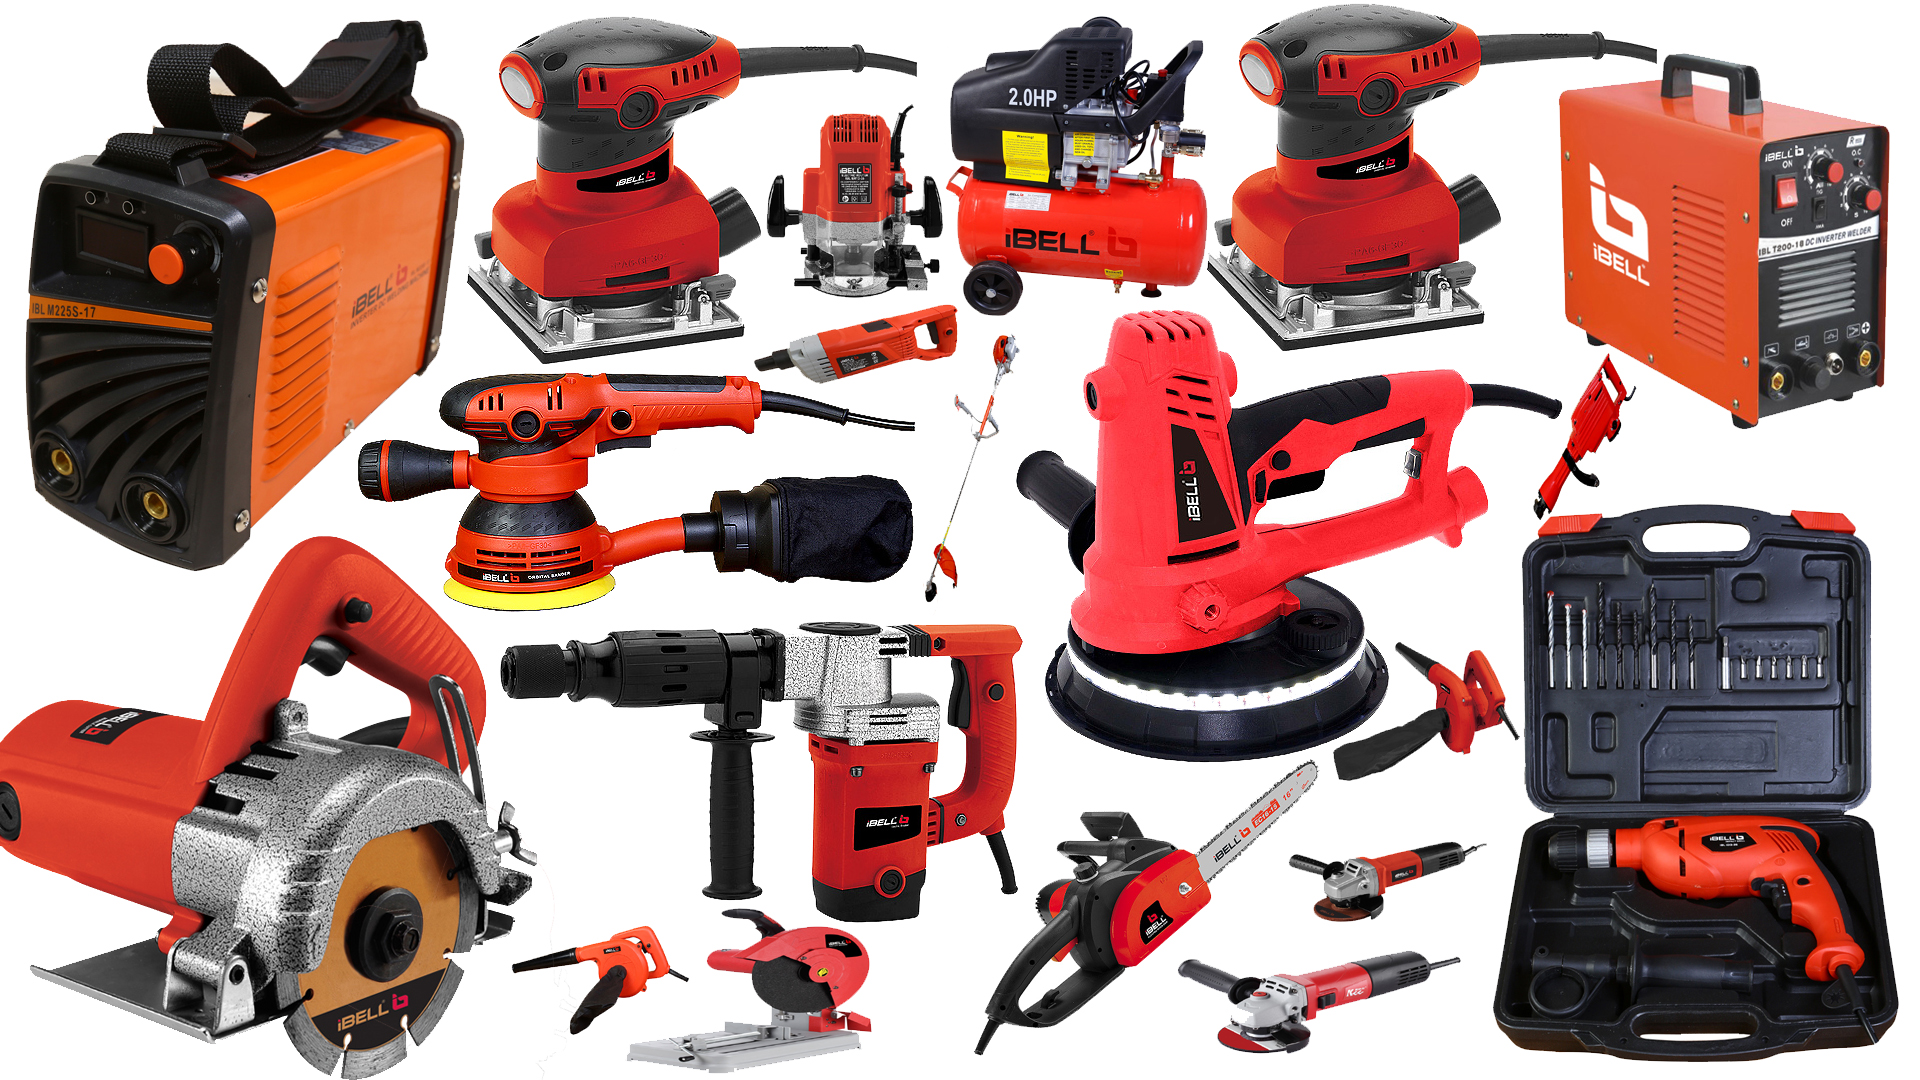 power tools names. name the ponkunnam power tools power tools names s